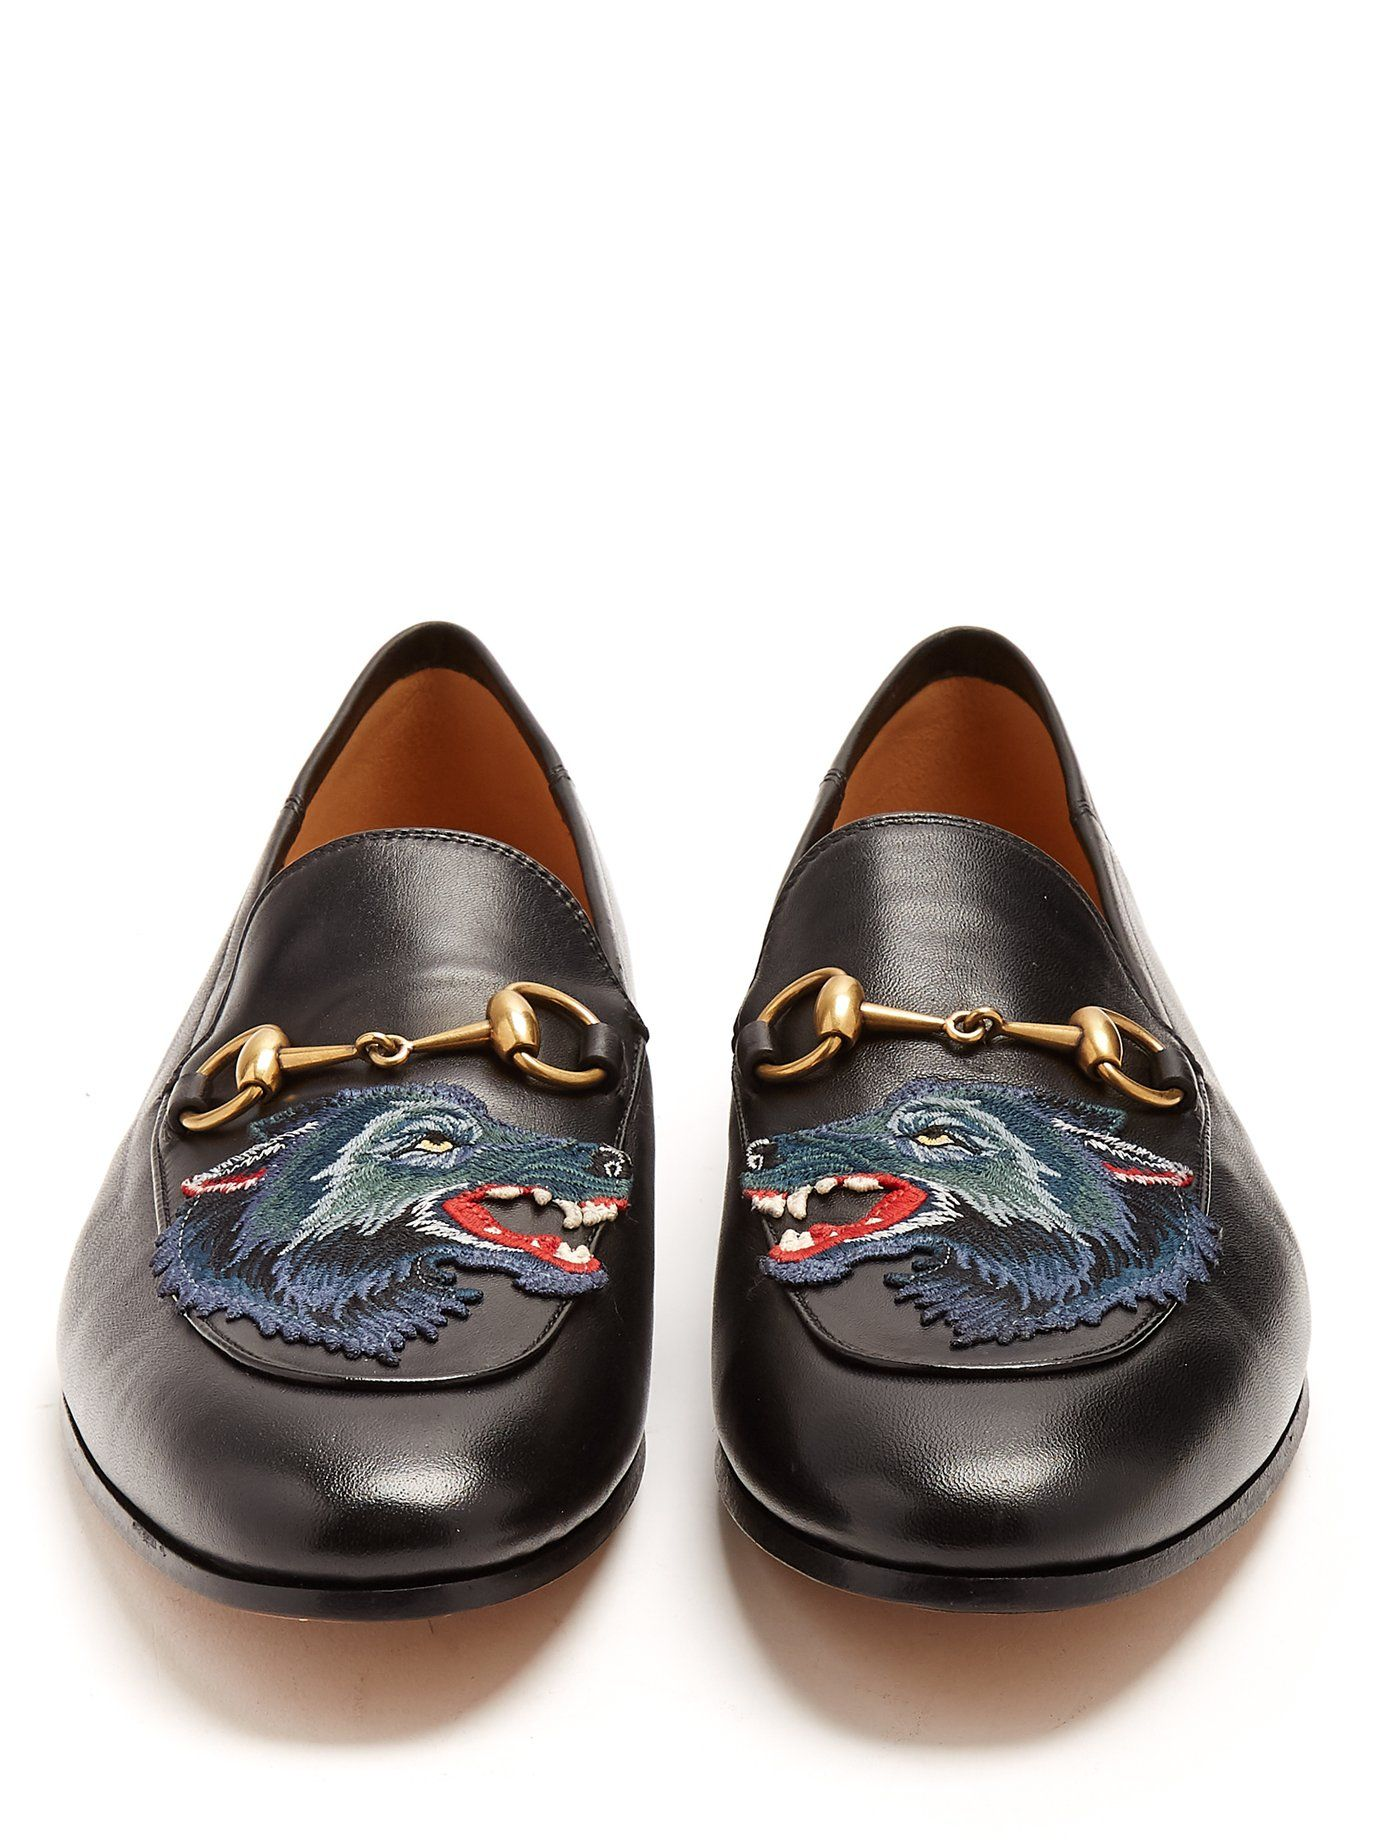 3b763671079 Click here to buy Gucci Brixton wolf-appliqué leather loafers at  MATCHESFASHION.COM